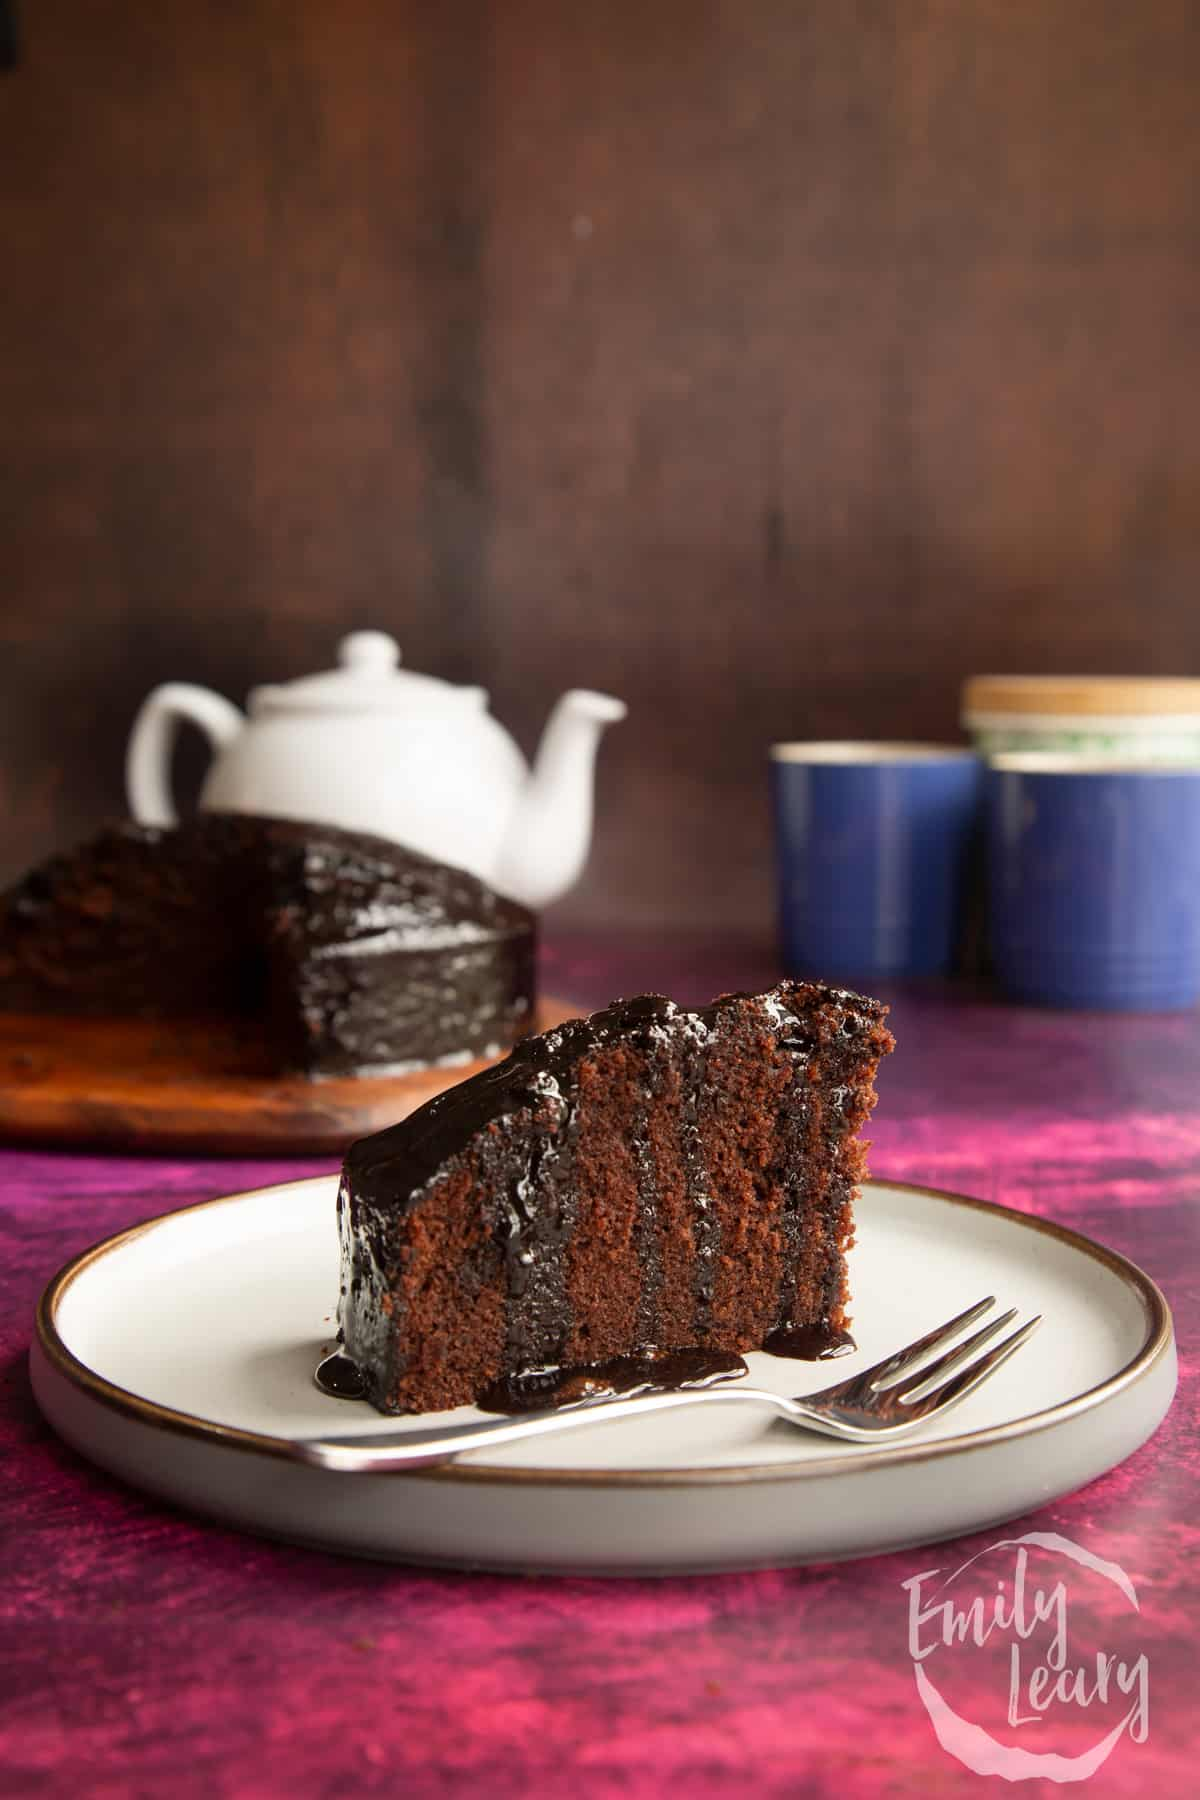 A slice of chocolate drizzle cake on a plate with a fork.